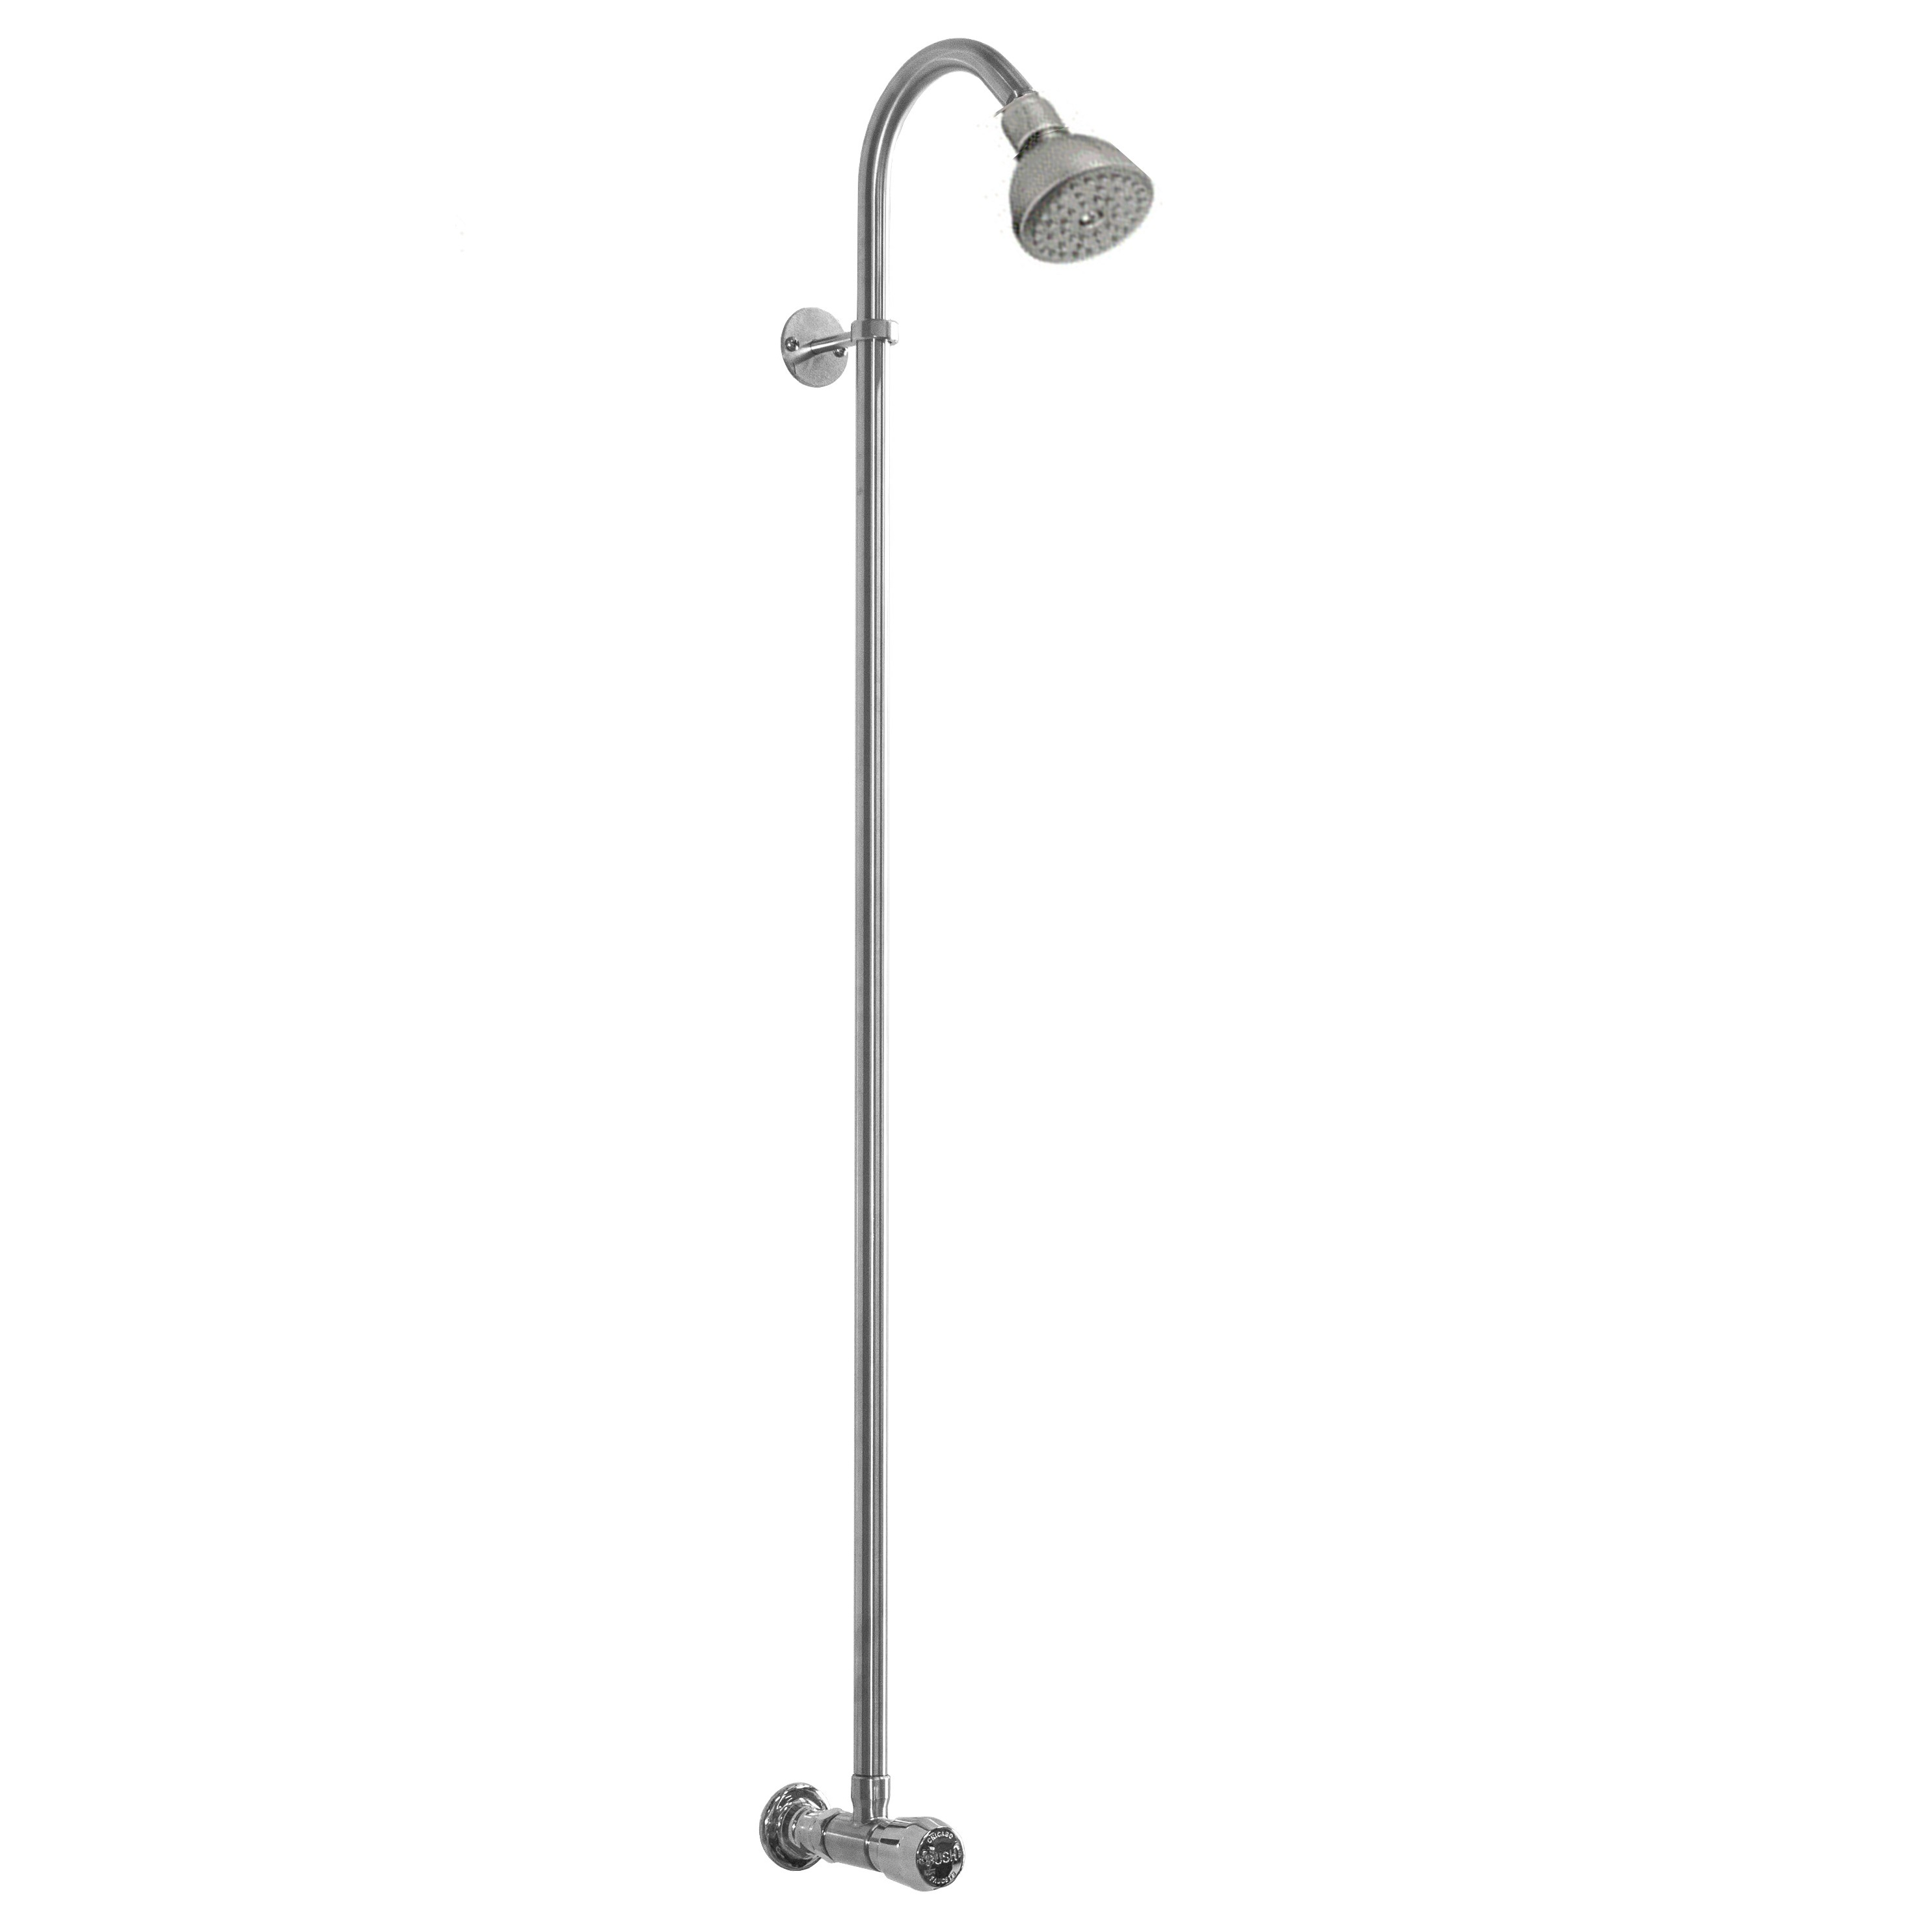 Outdoor Shower Company WM-442-ADA Wall Mount Single Supply Shower